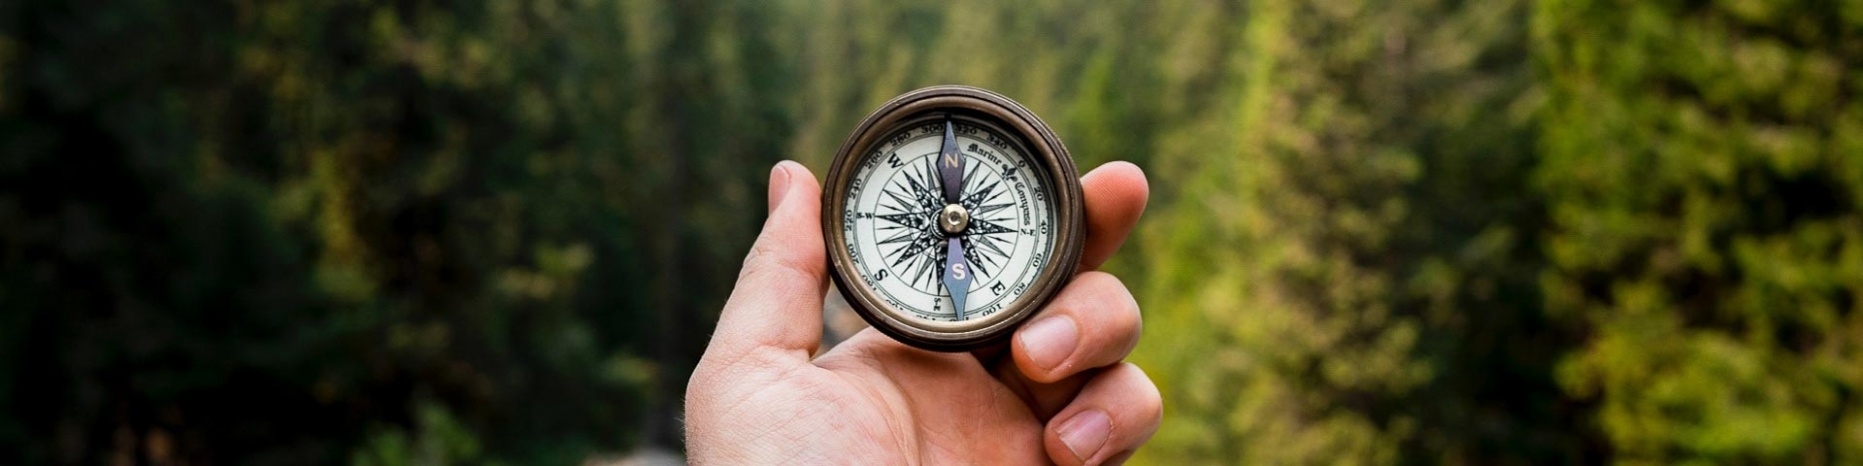 Image of a hand holding a compass in wooded area.